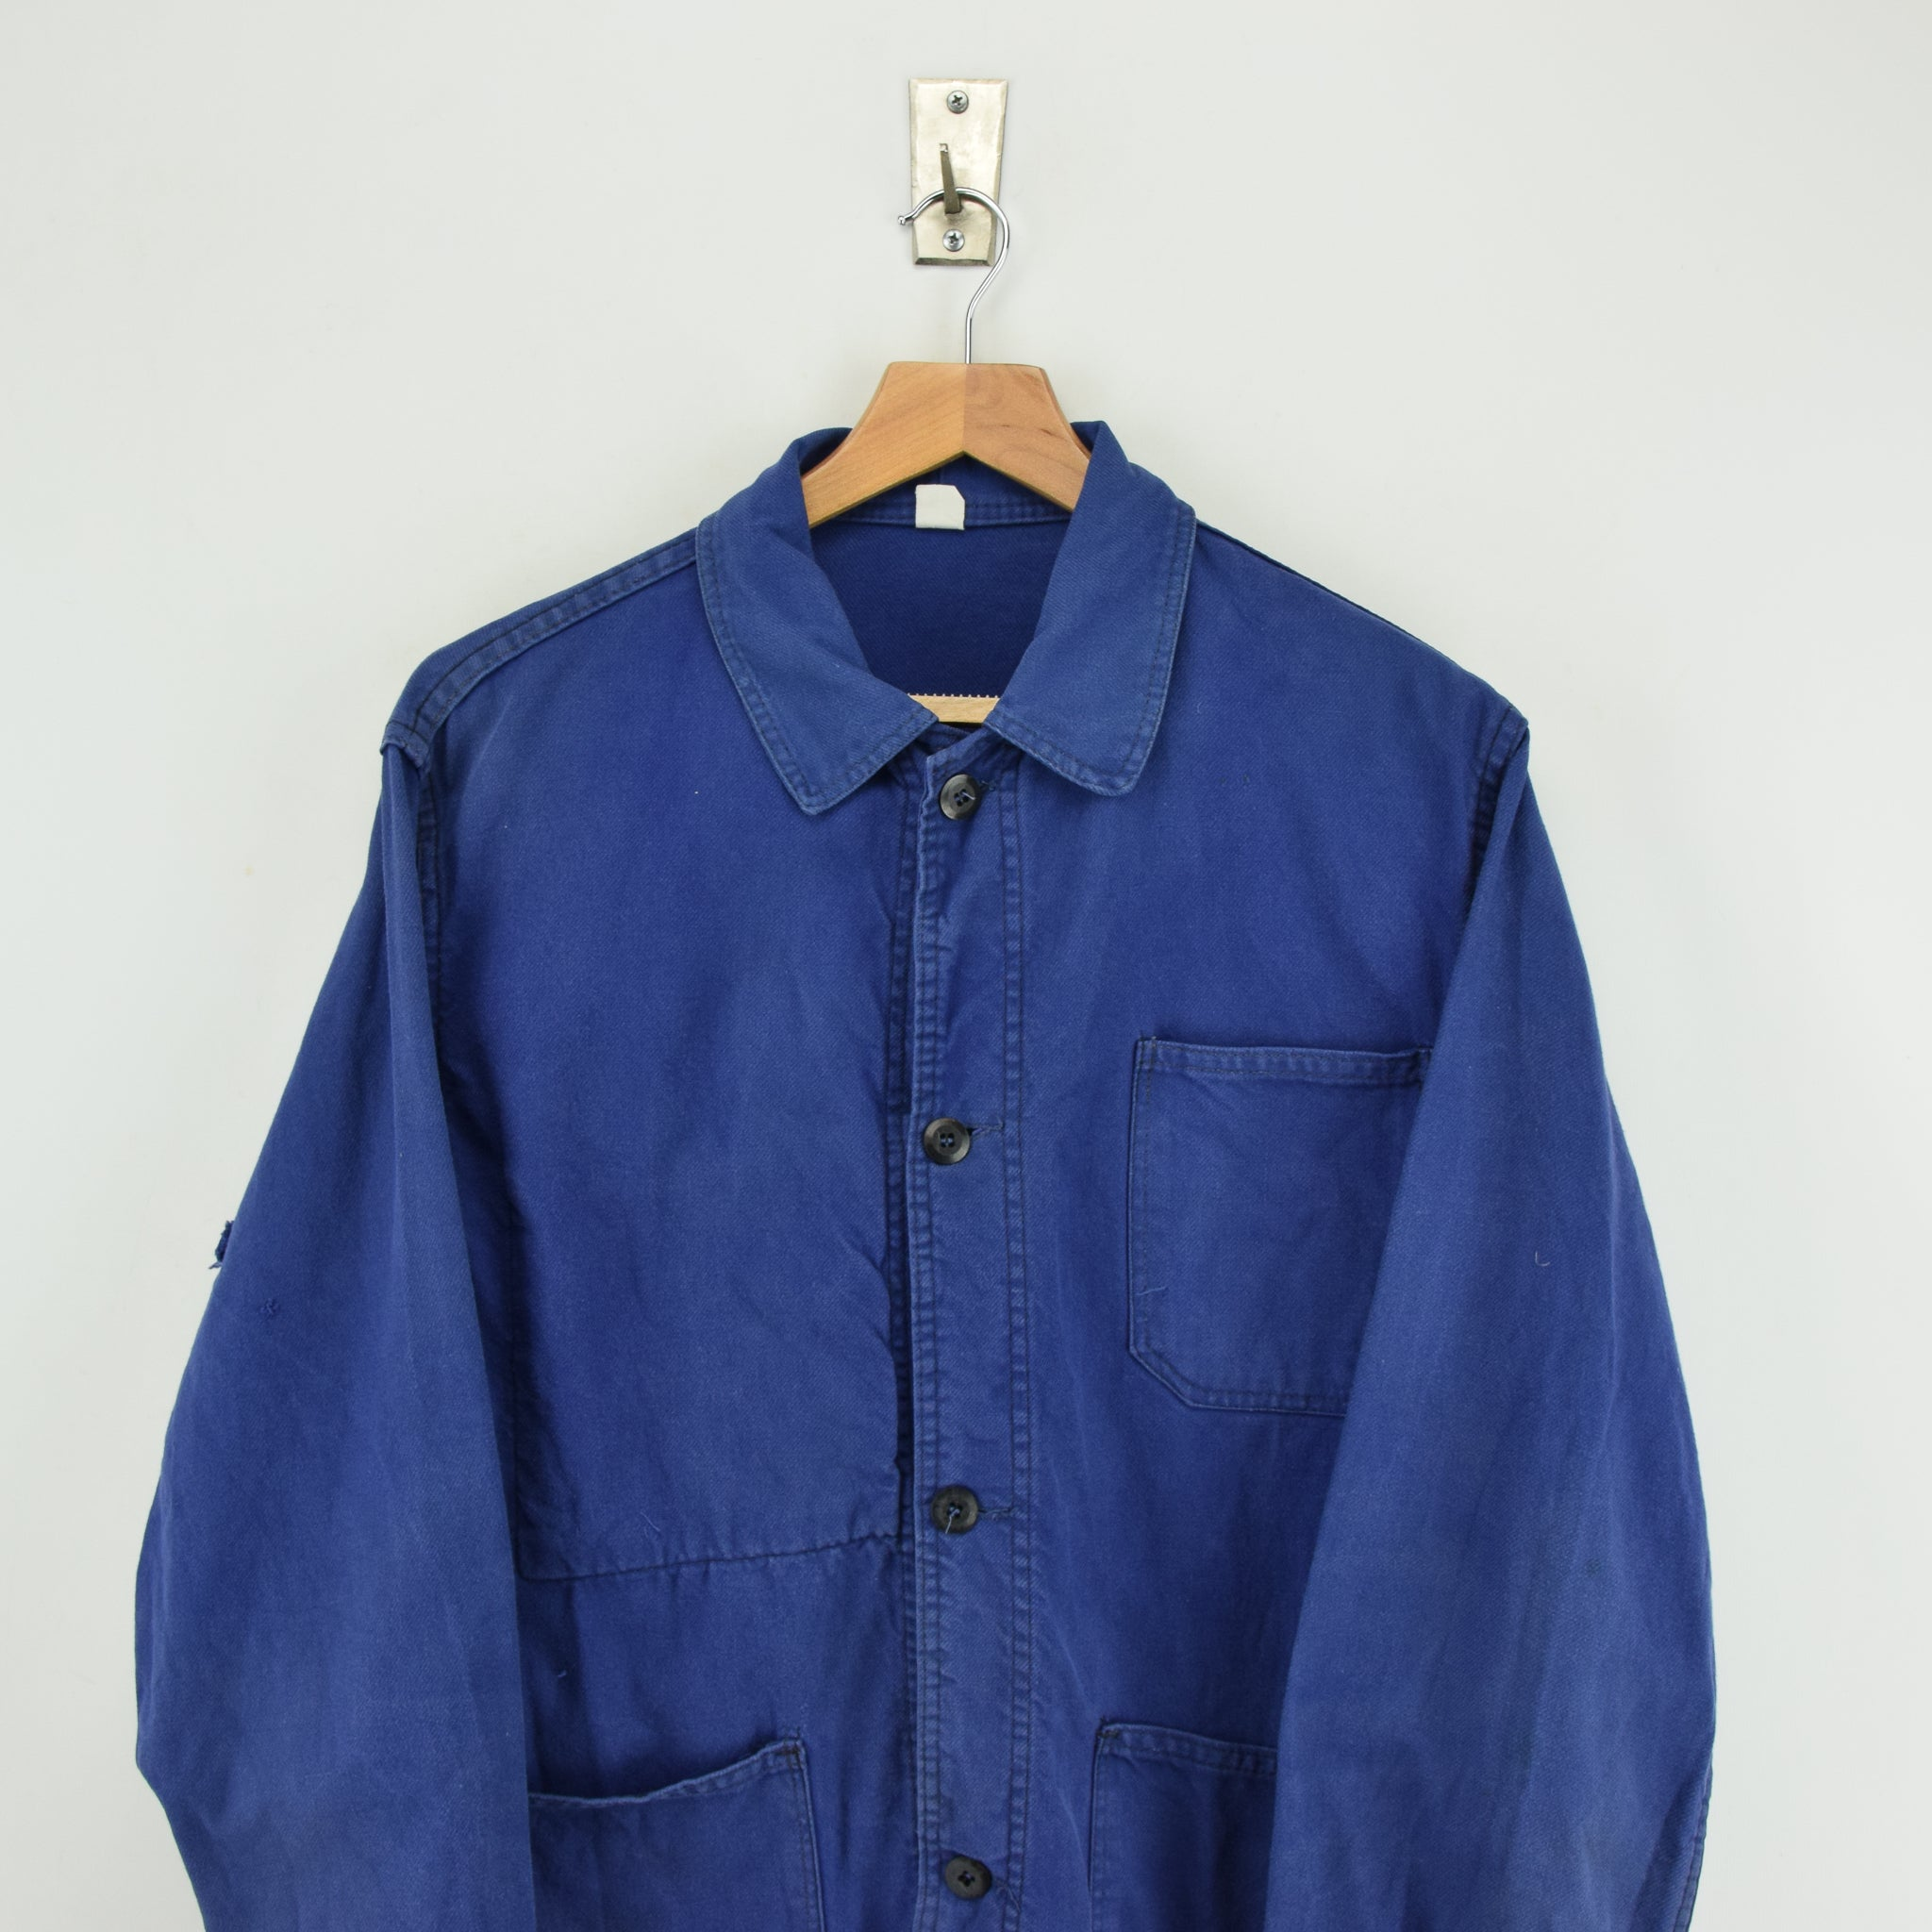 Vintage Washed Blue French Worker Sanforized Cotton Chore Jacket M chest